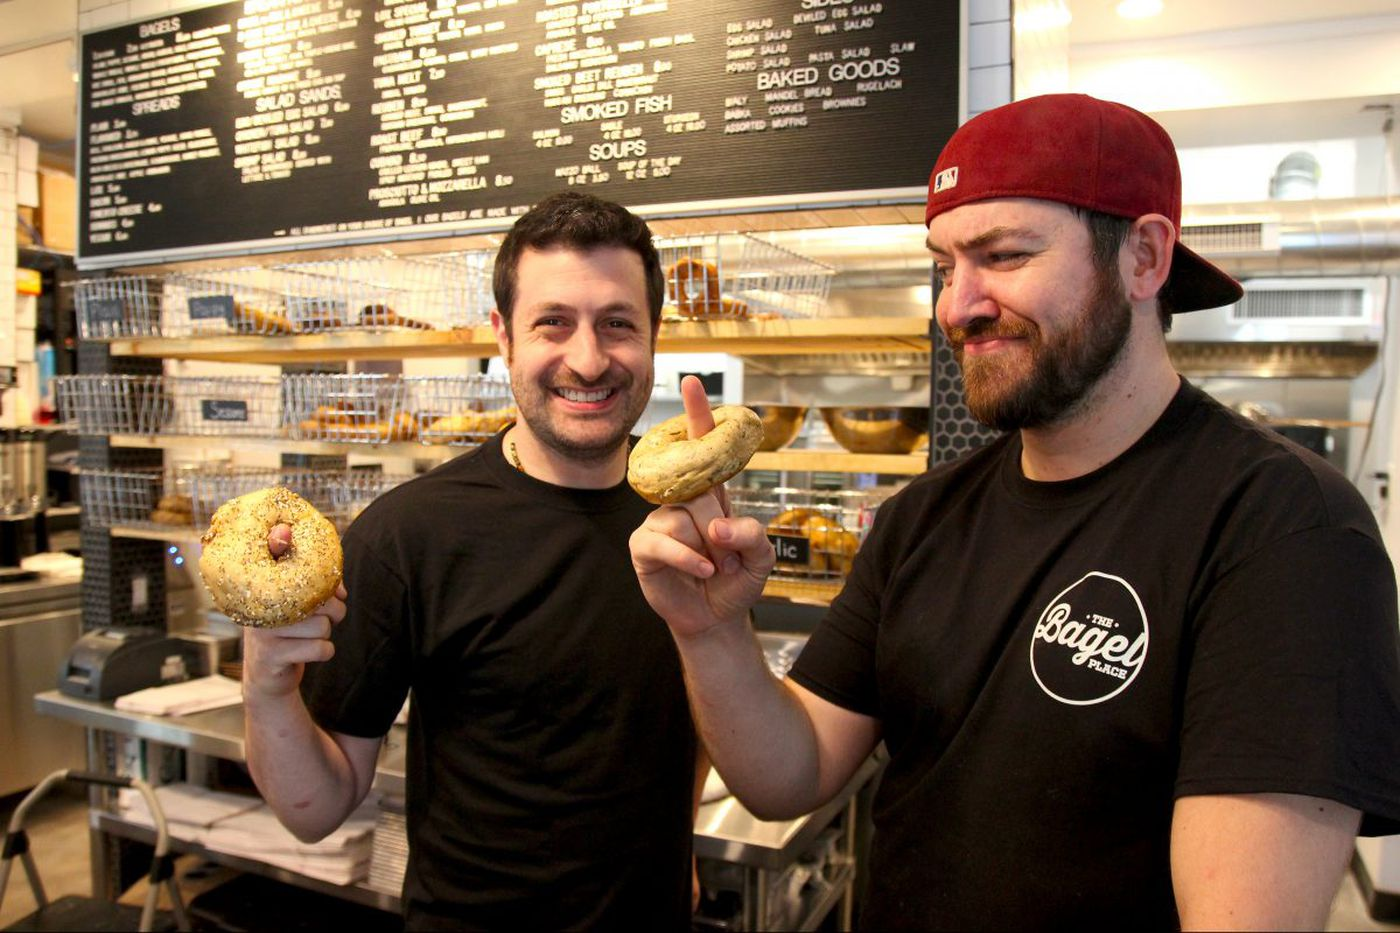 The Bagel Place: New 'round here in Queen Village